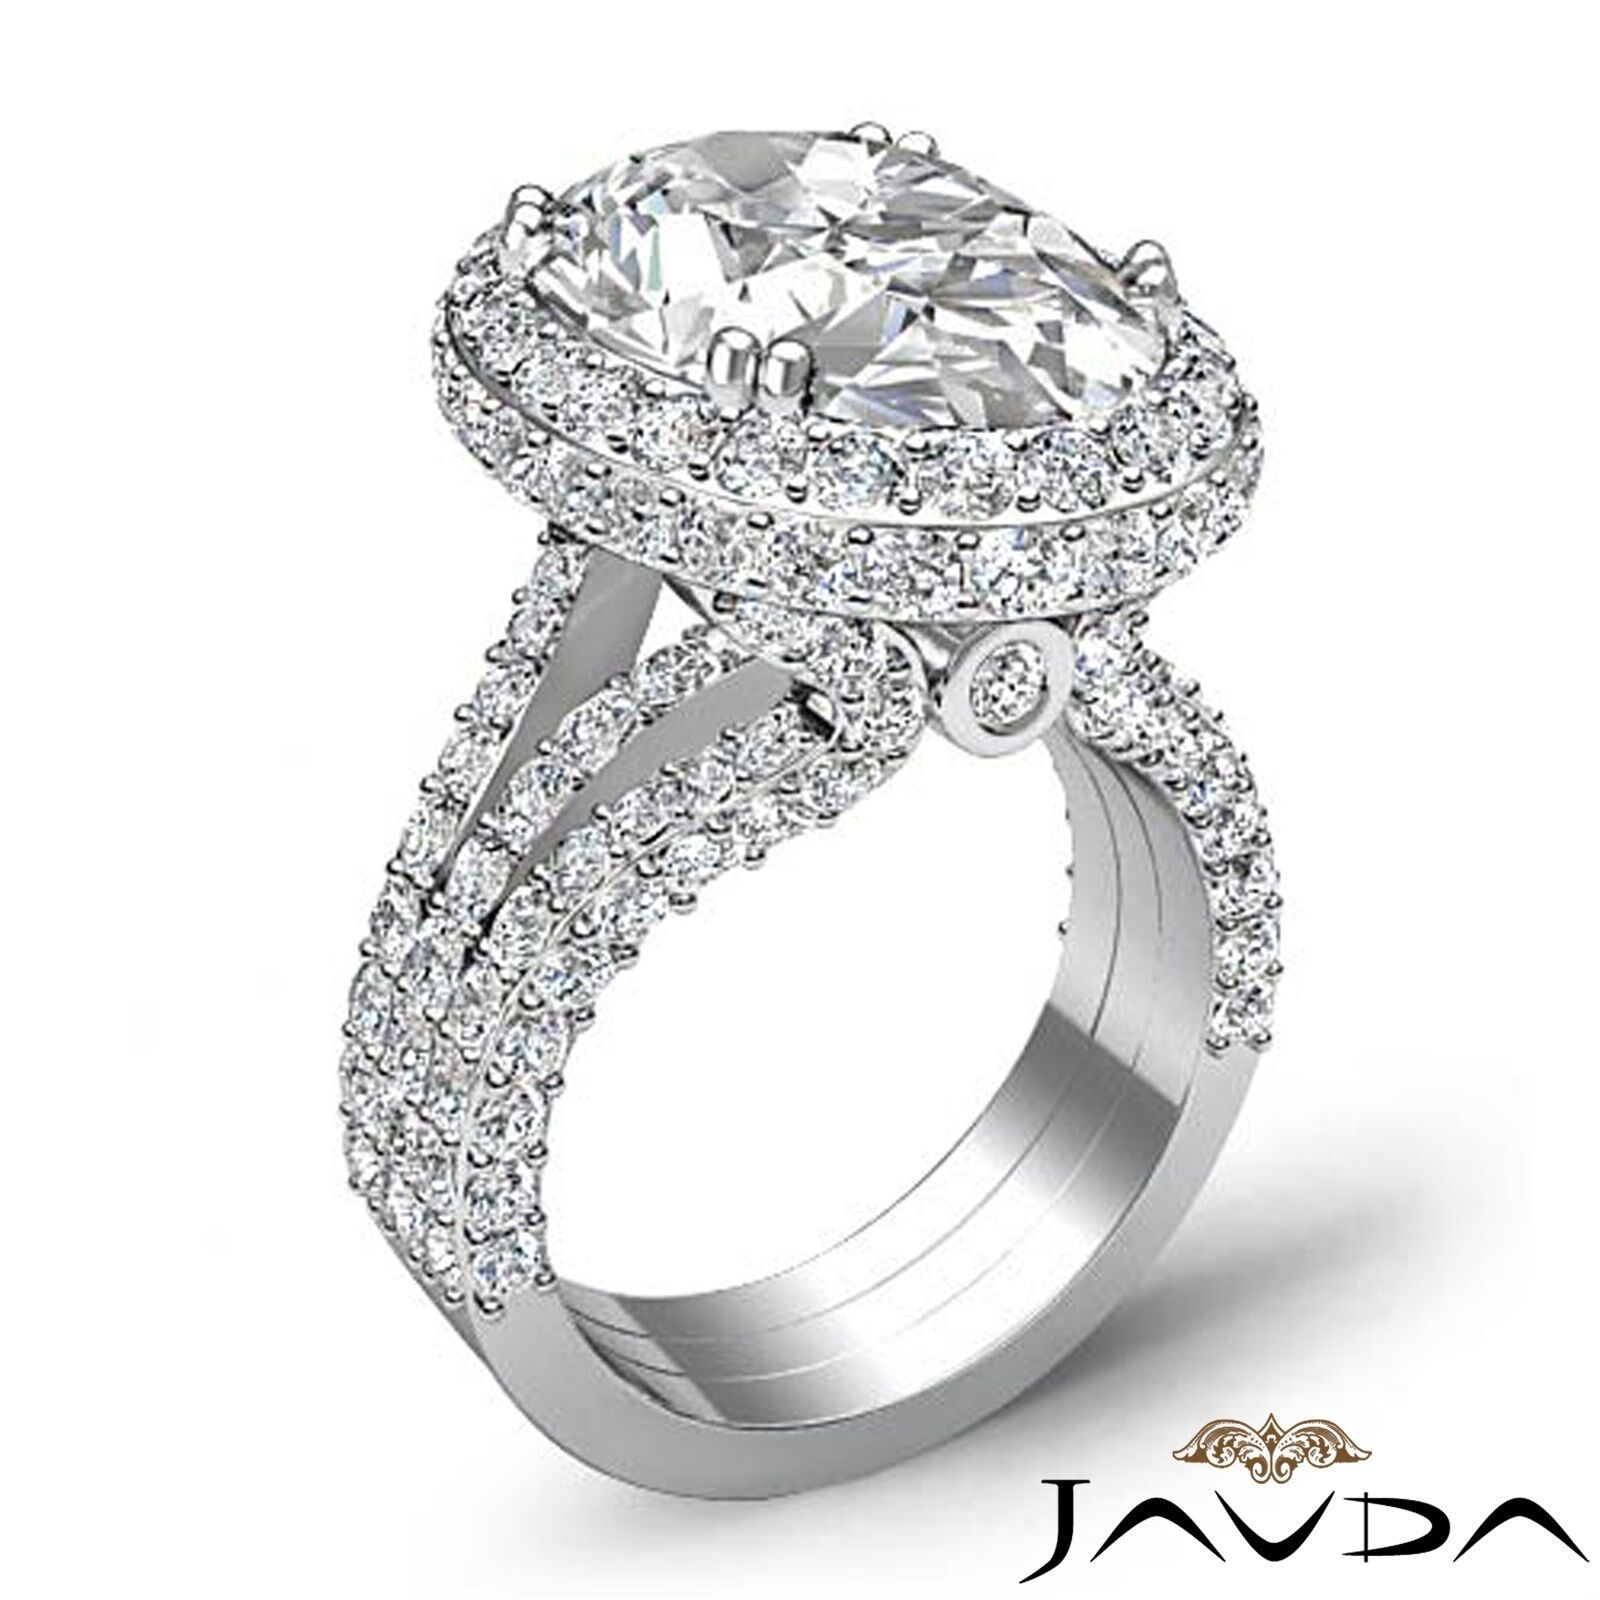 Double Prong Circa Halo Pave Bezel Oval Diamond Engagement Ring GIA F VS1 3.65Ct 1